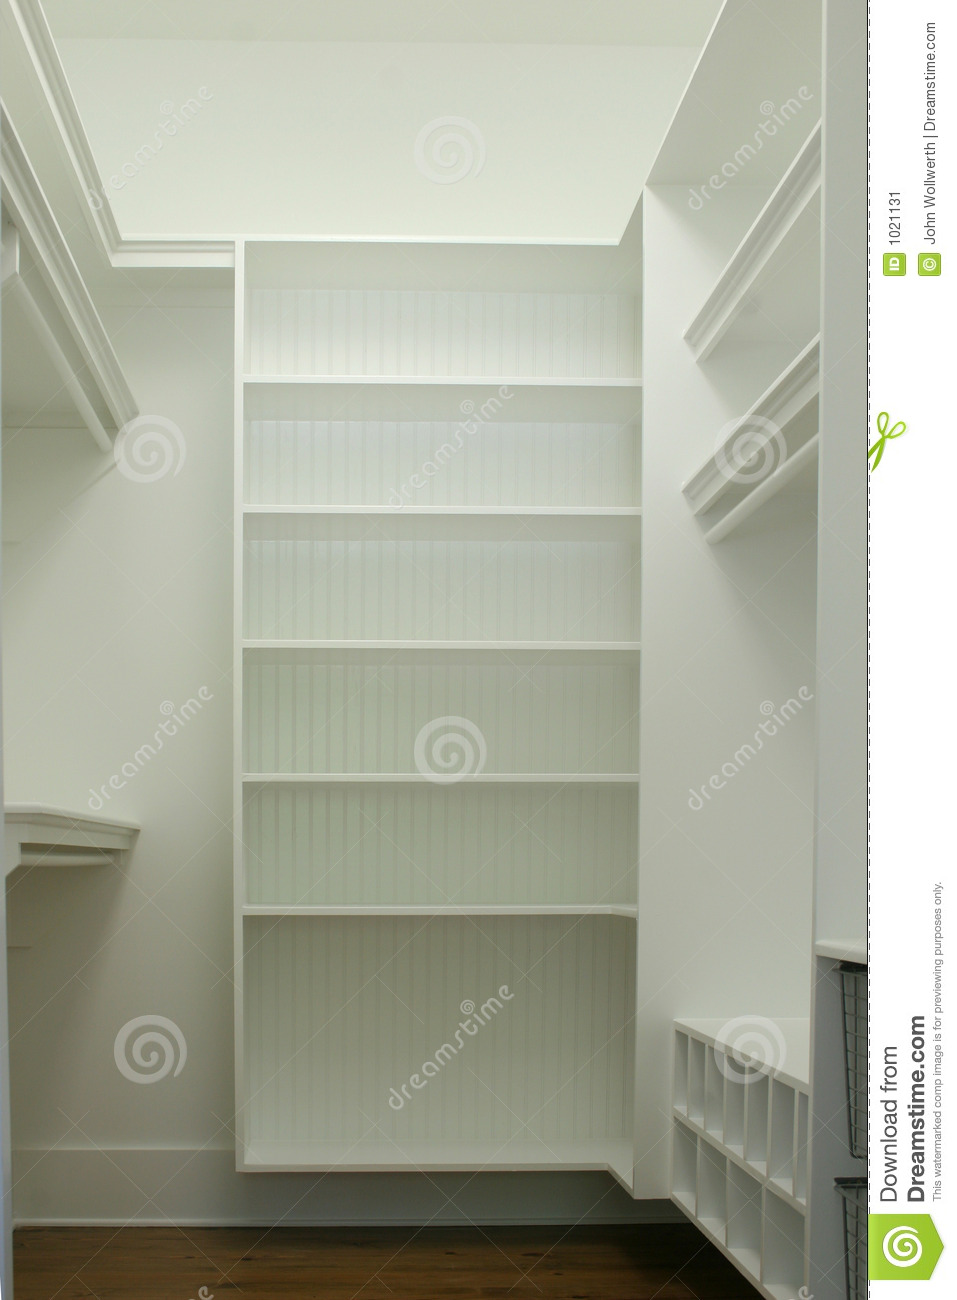 Walk In Closet Stock Image Image Of Hang Shelf House